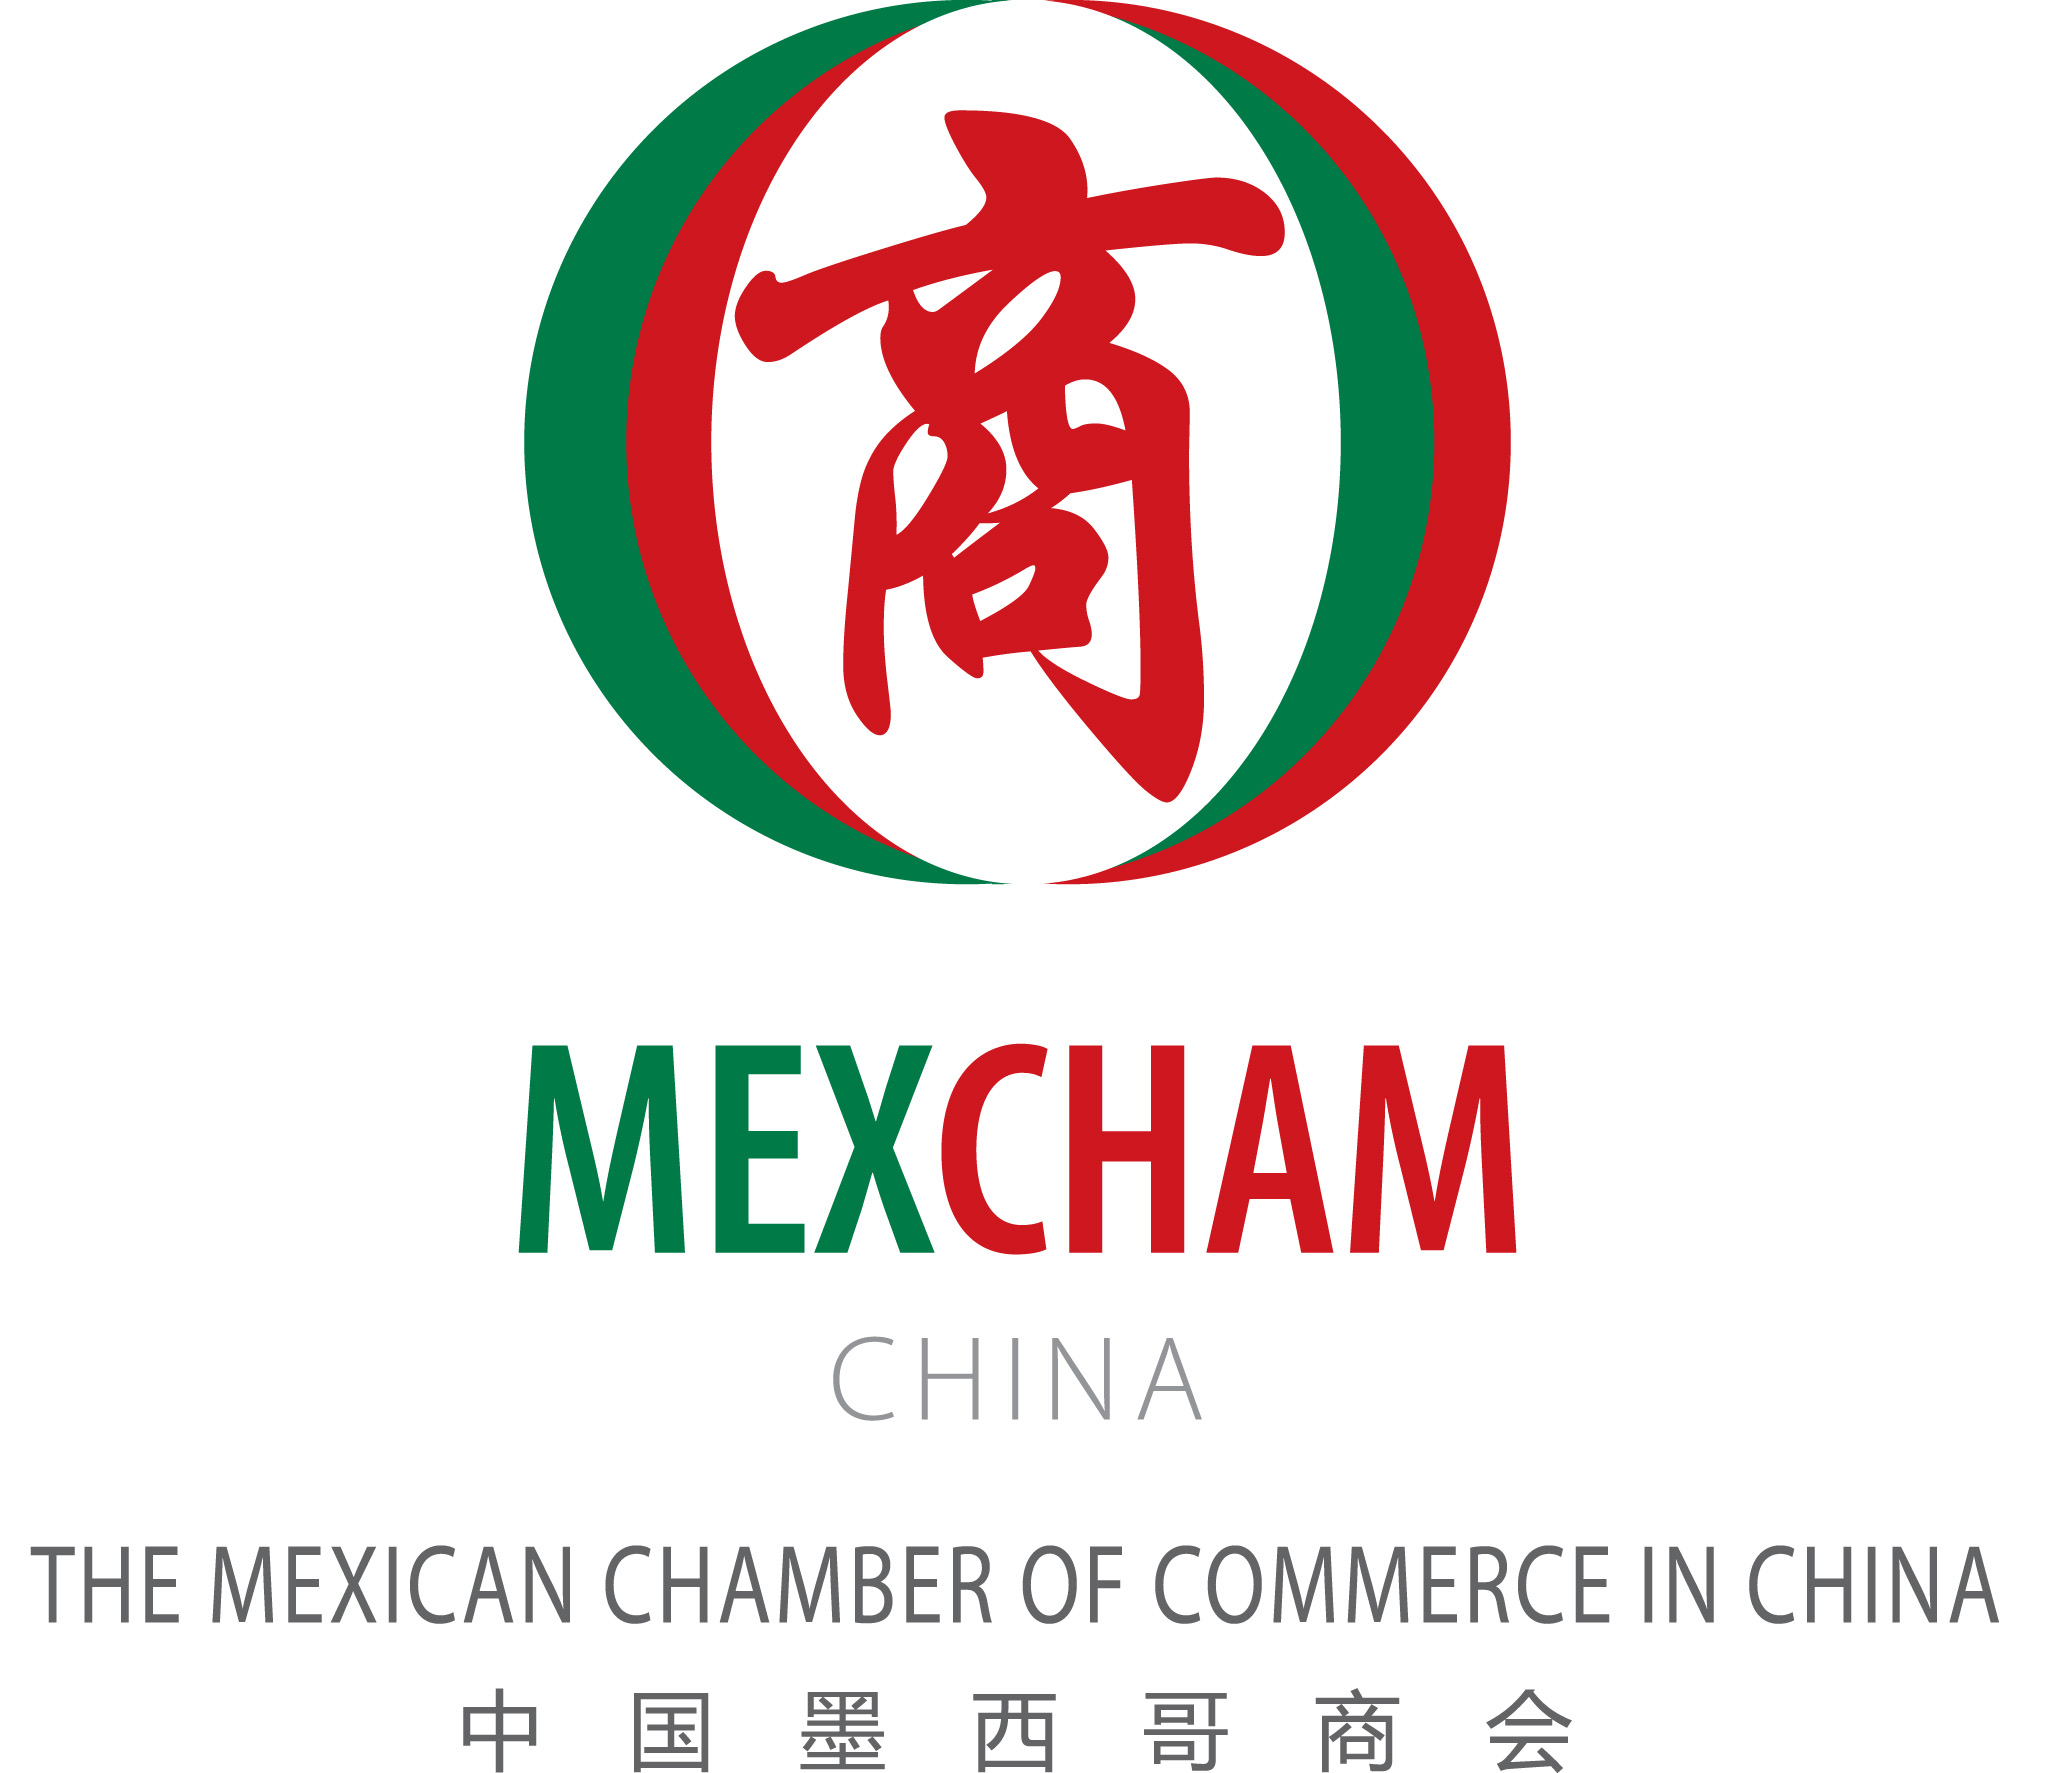 MexCham China Logo